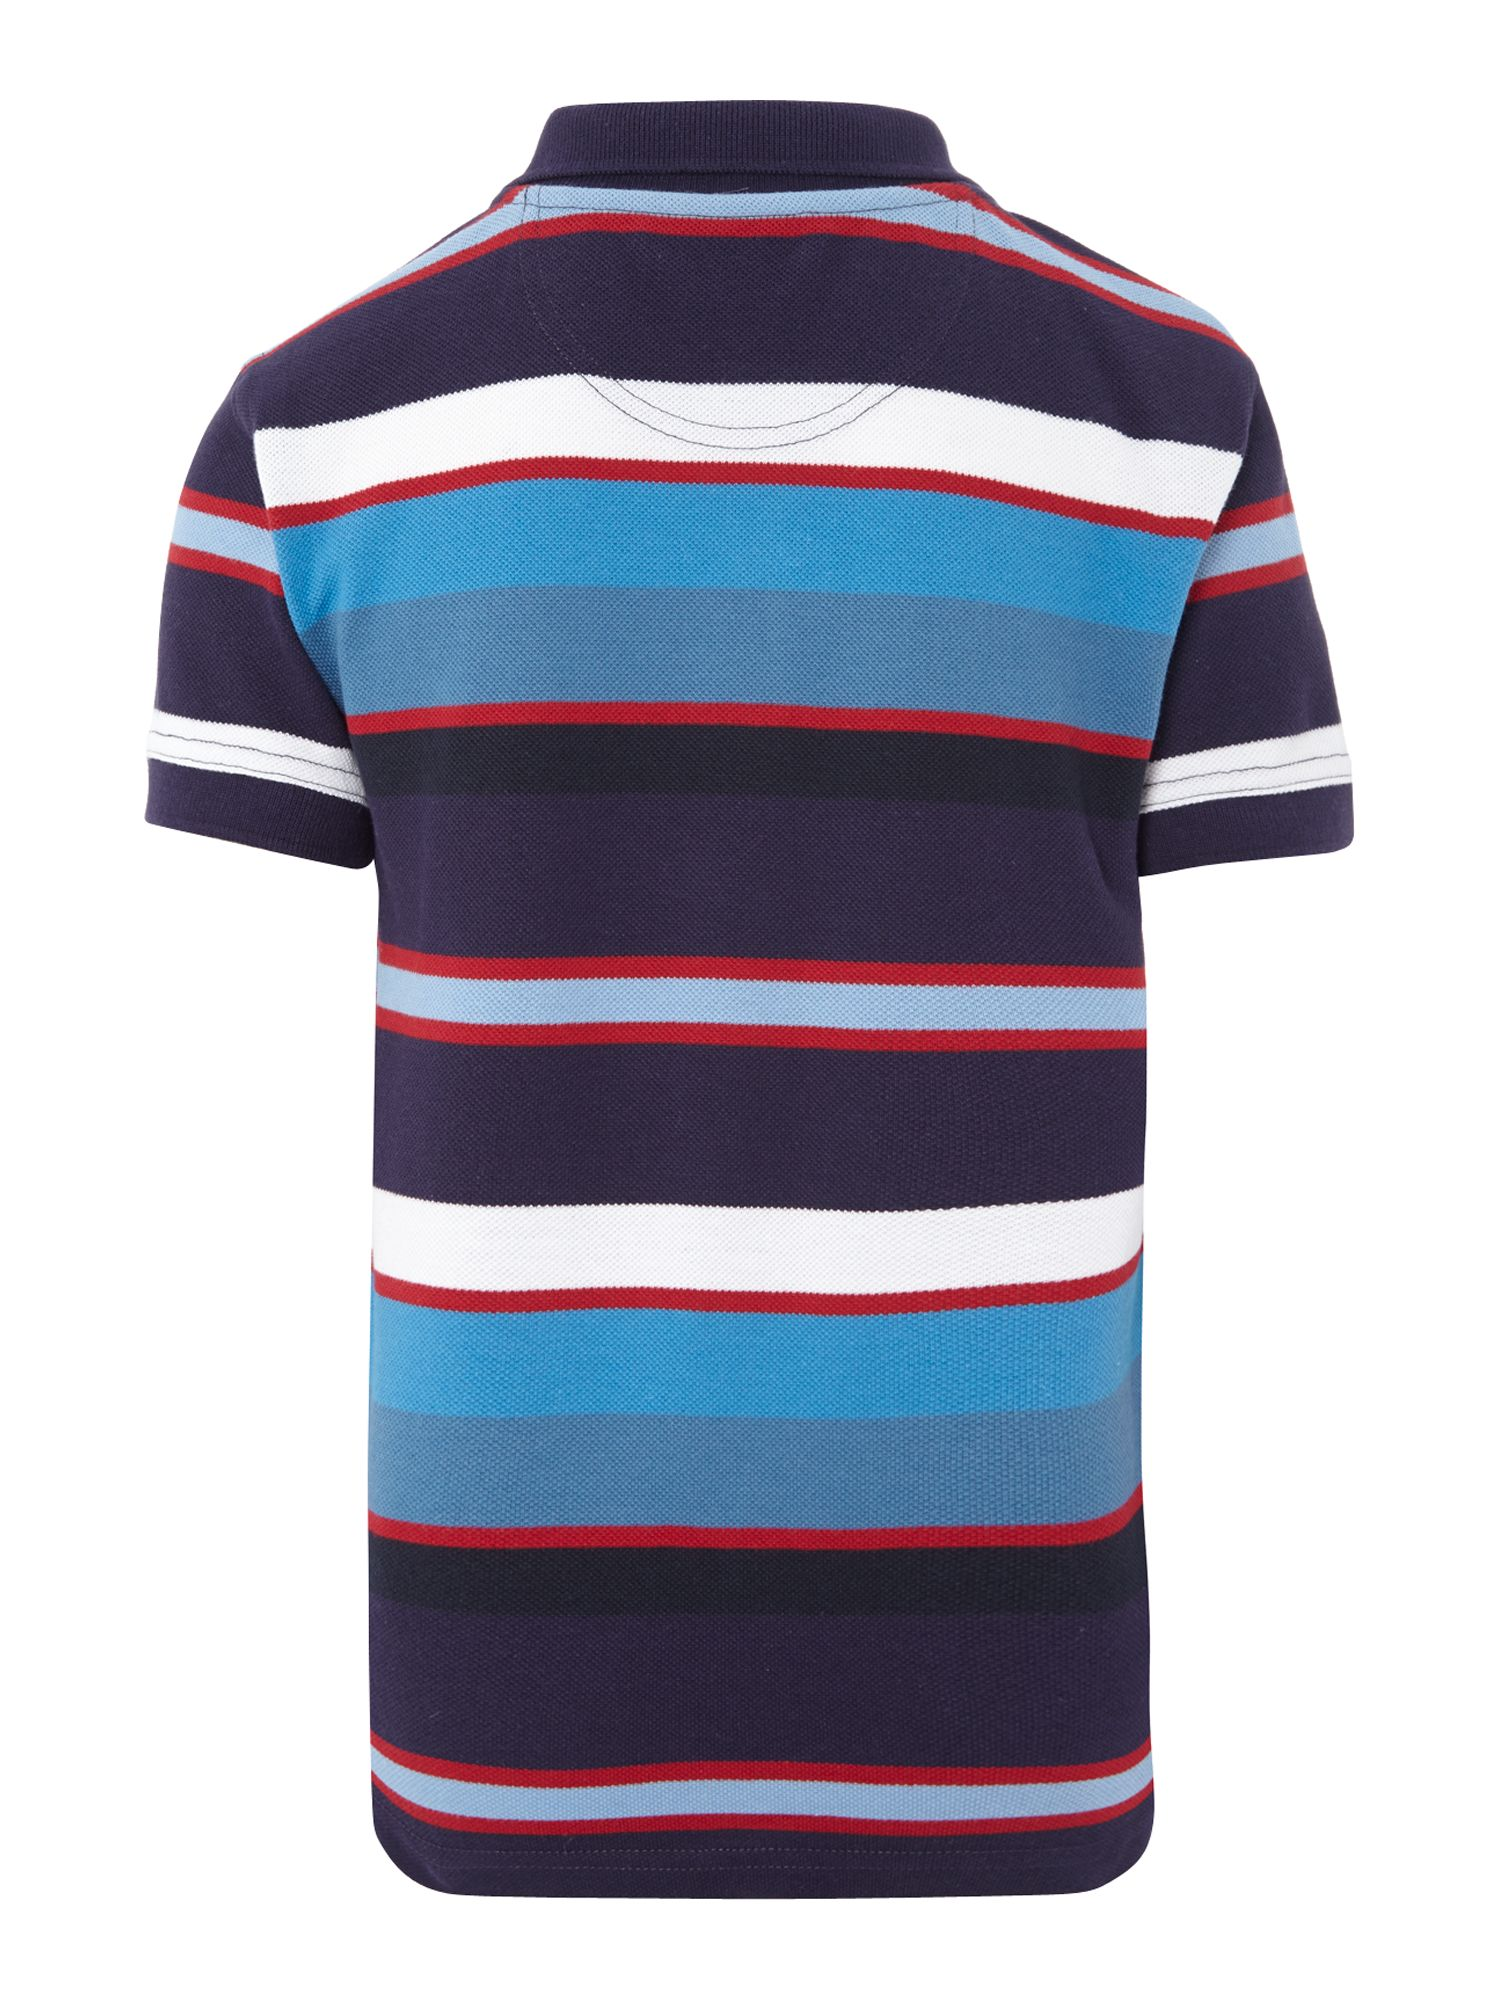 Boys chest logo striped polo